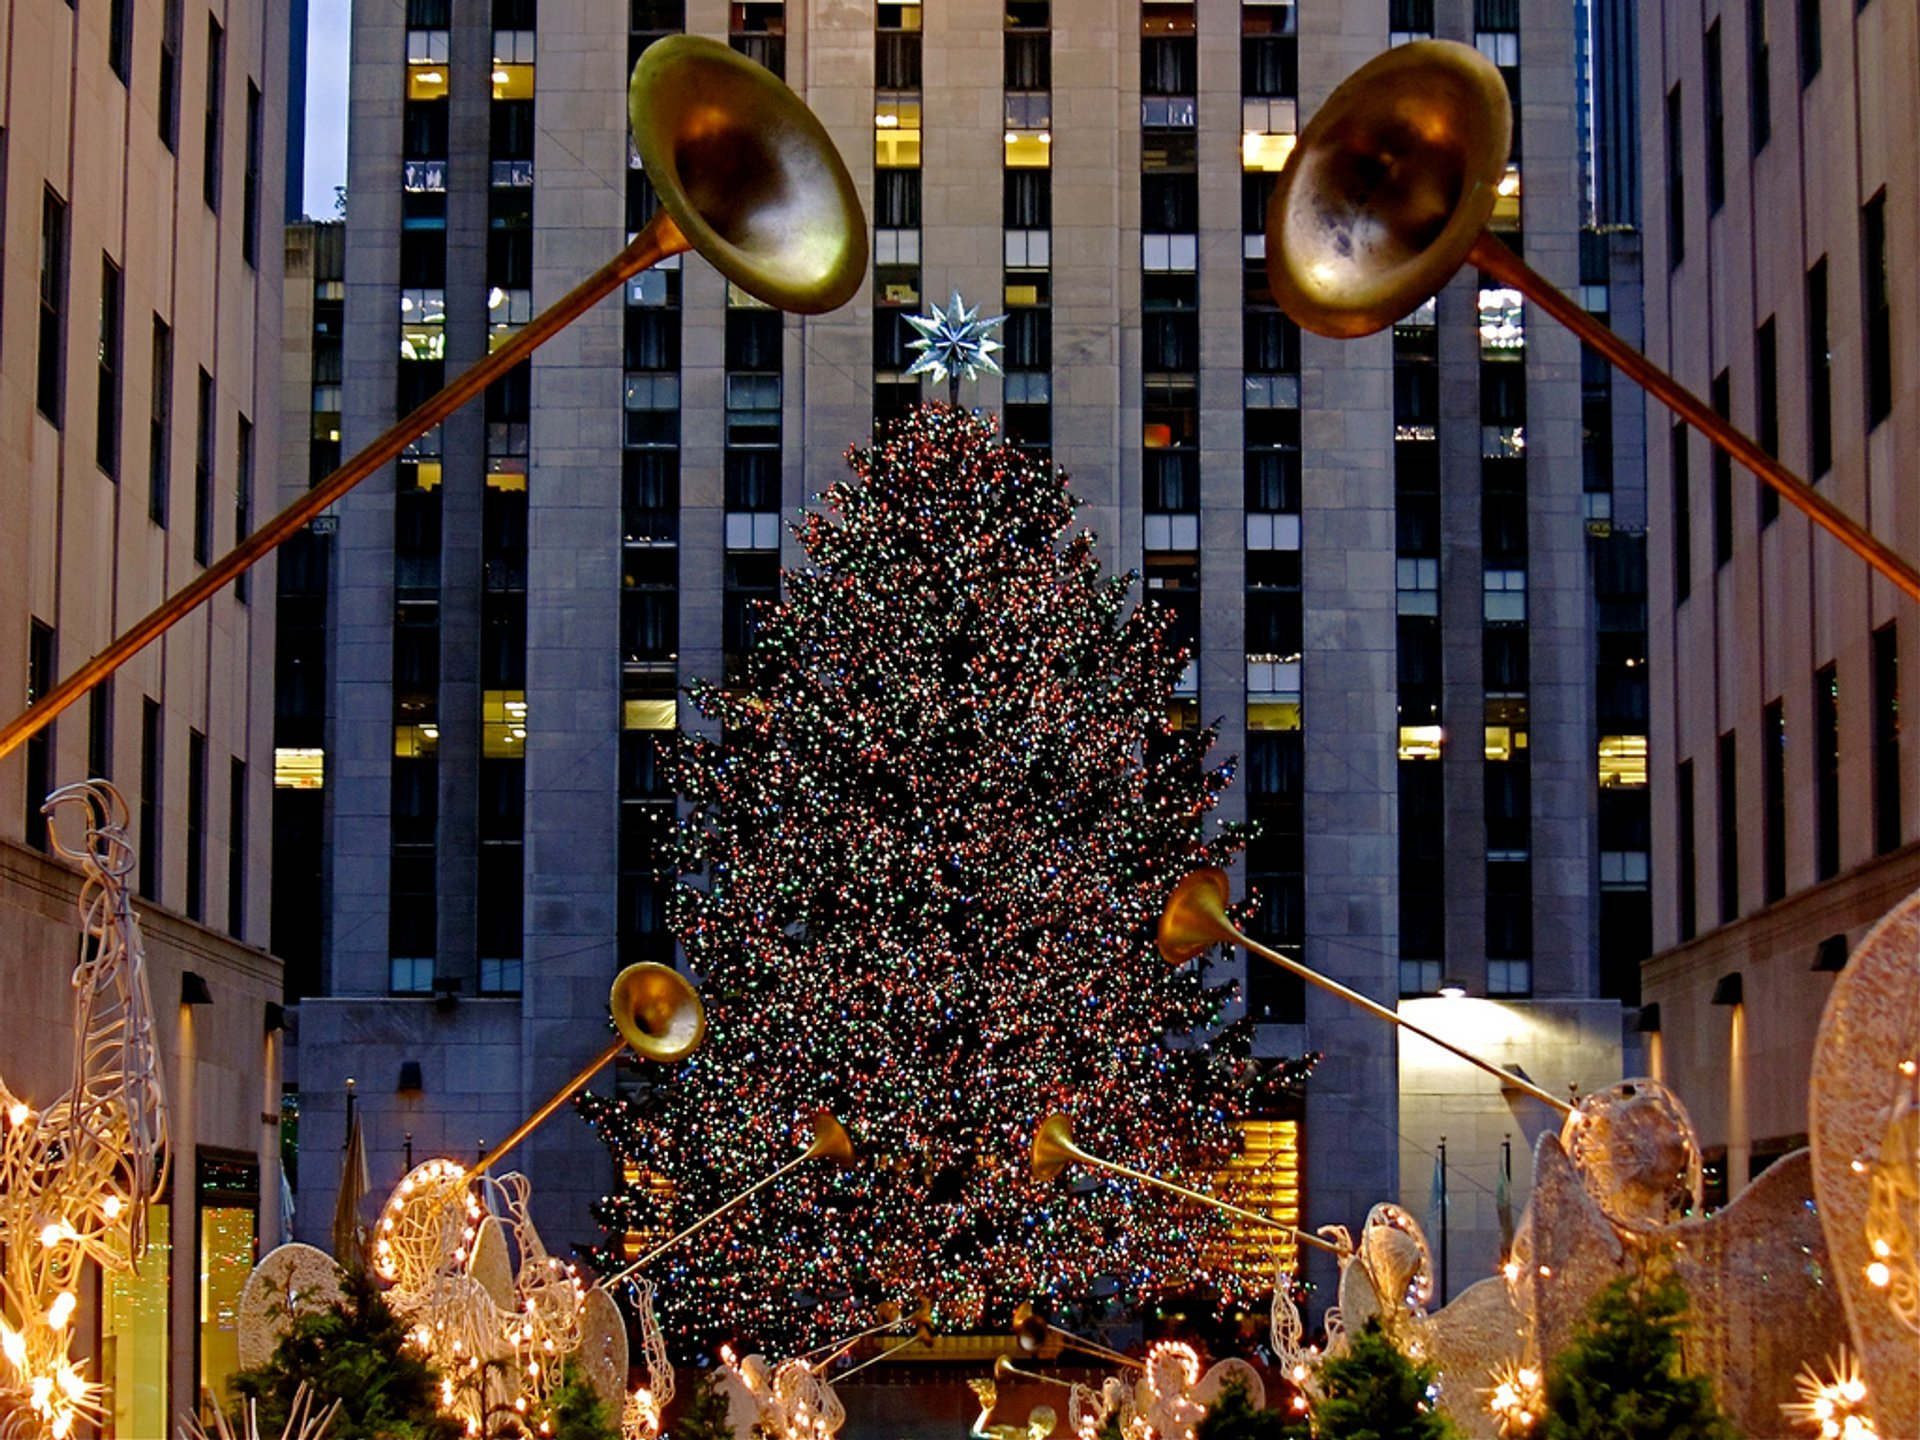 Where Is The Rockefeller Christmas Tree Coming From 2019 Rockefeller Center Christmas Tree 2019 2020 in New York   Dates & Map